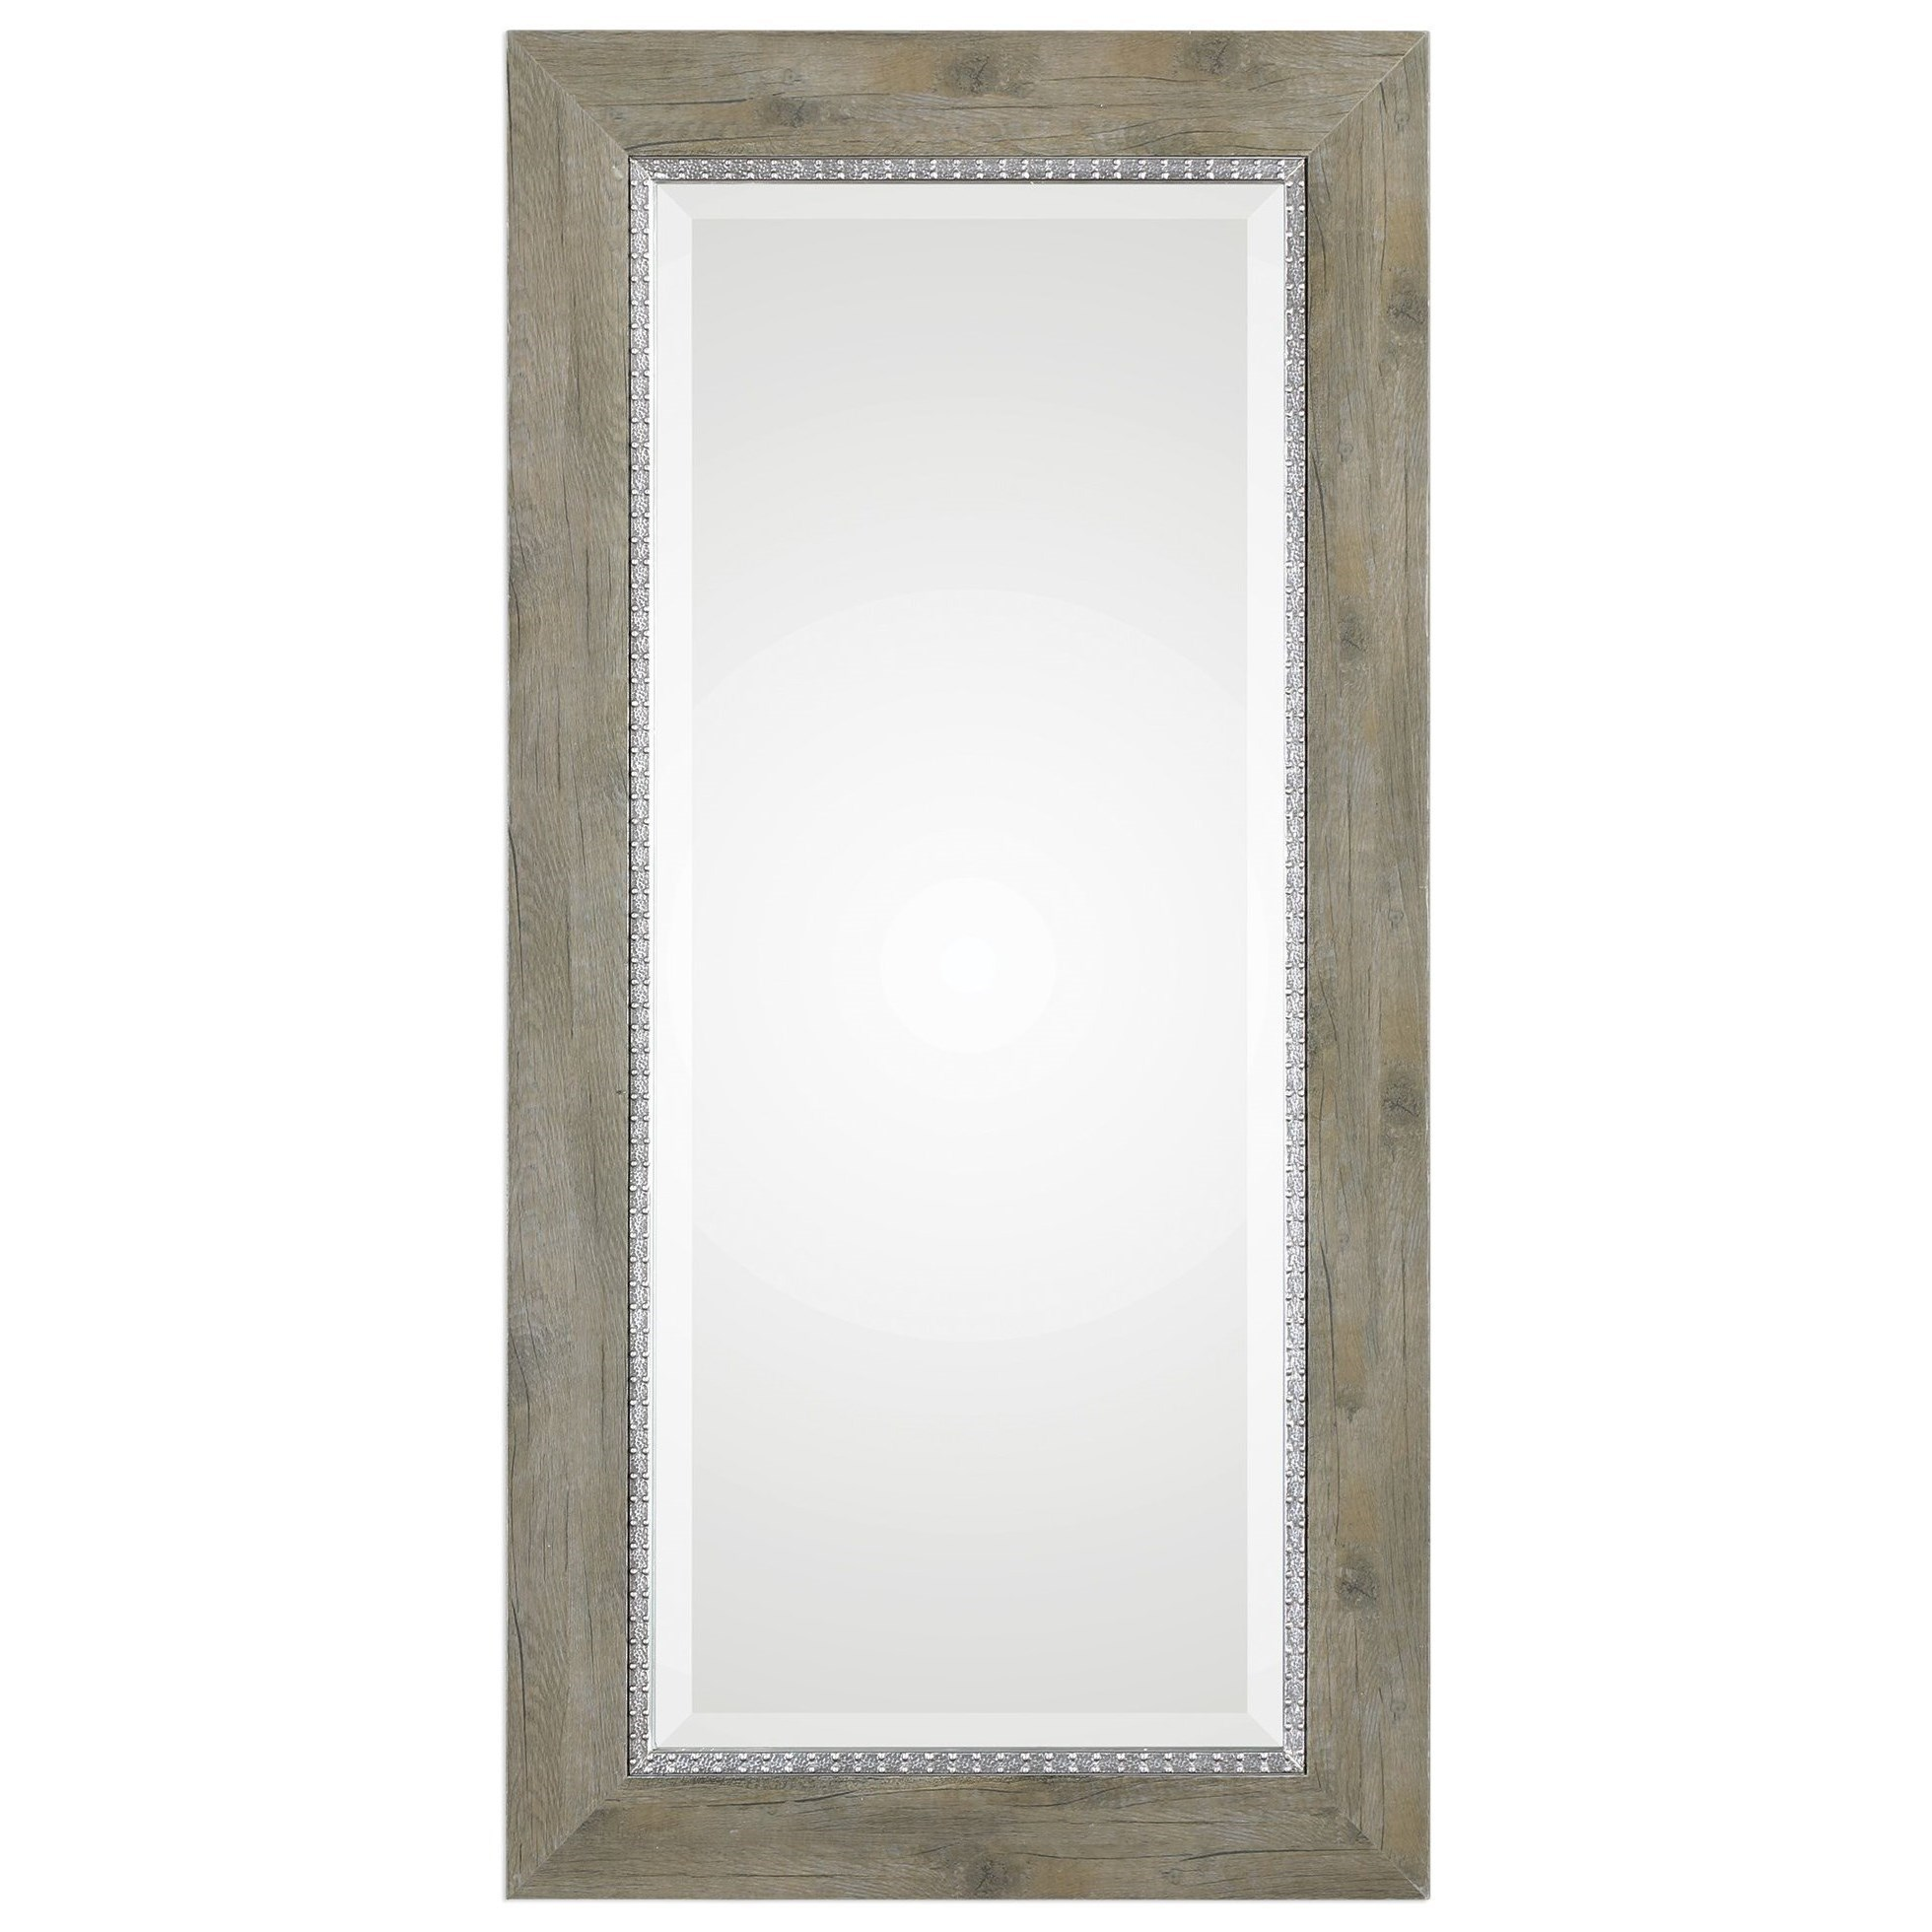 Mirrors Sheyenne Rustic Wood Mirror by Uttermost at Wayside Furniture